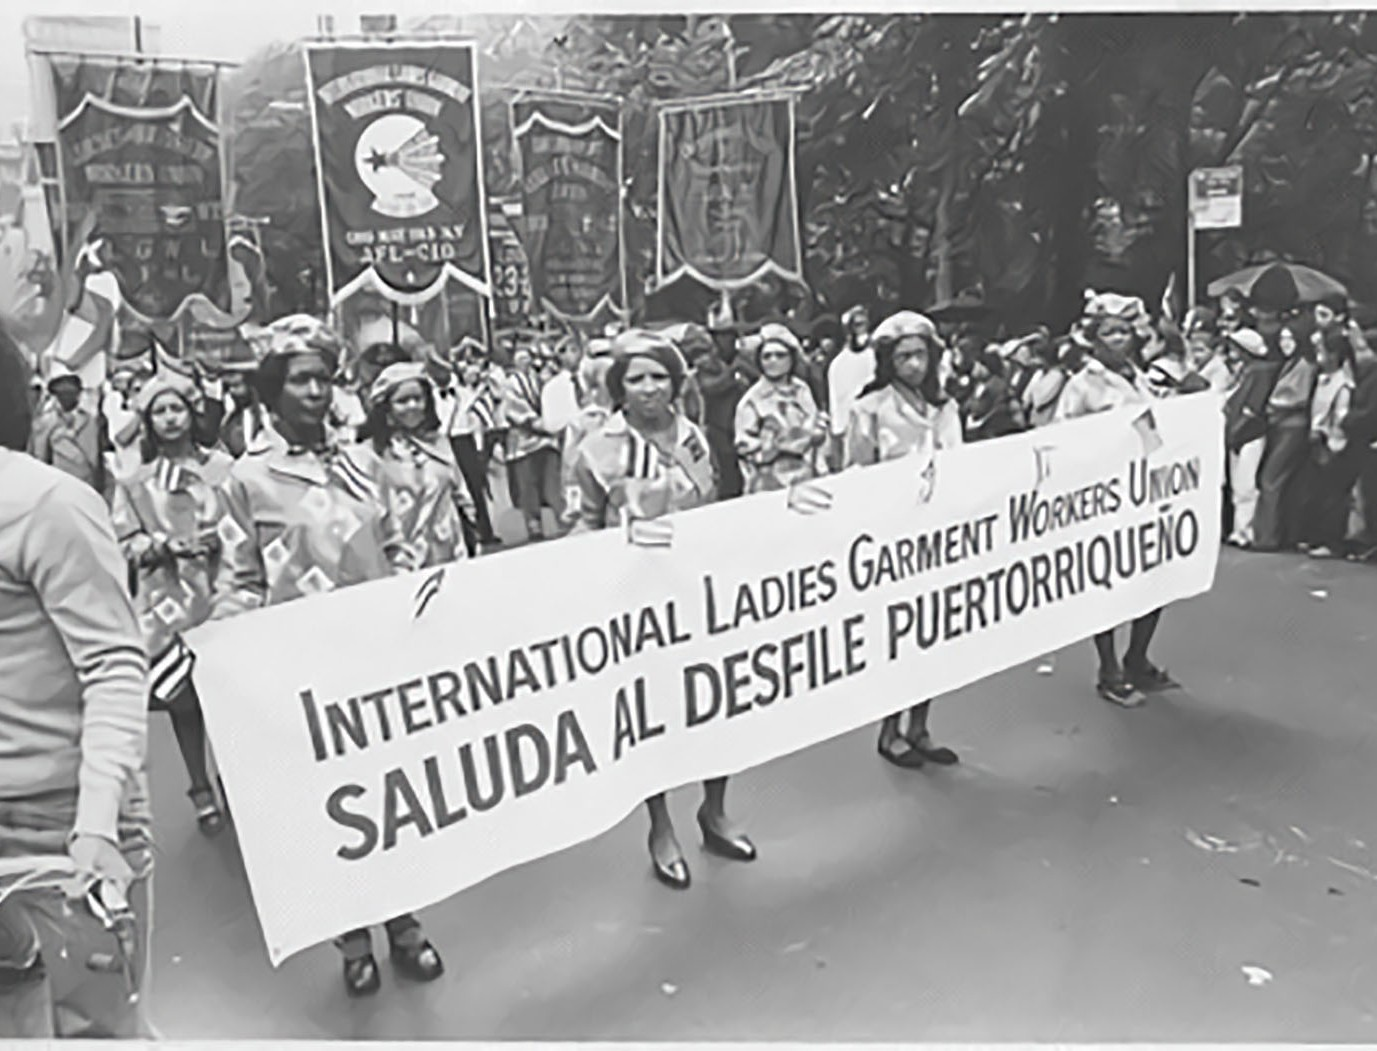 """A group of women participating in a march with a banner that says """"International Ladies Garment Workers Union Saluda al desfile Puertorriqueño."""""""